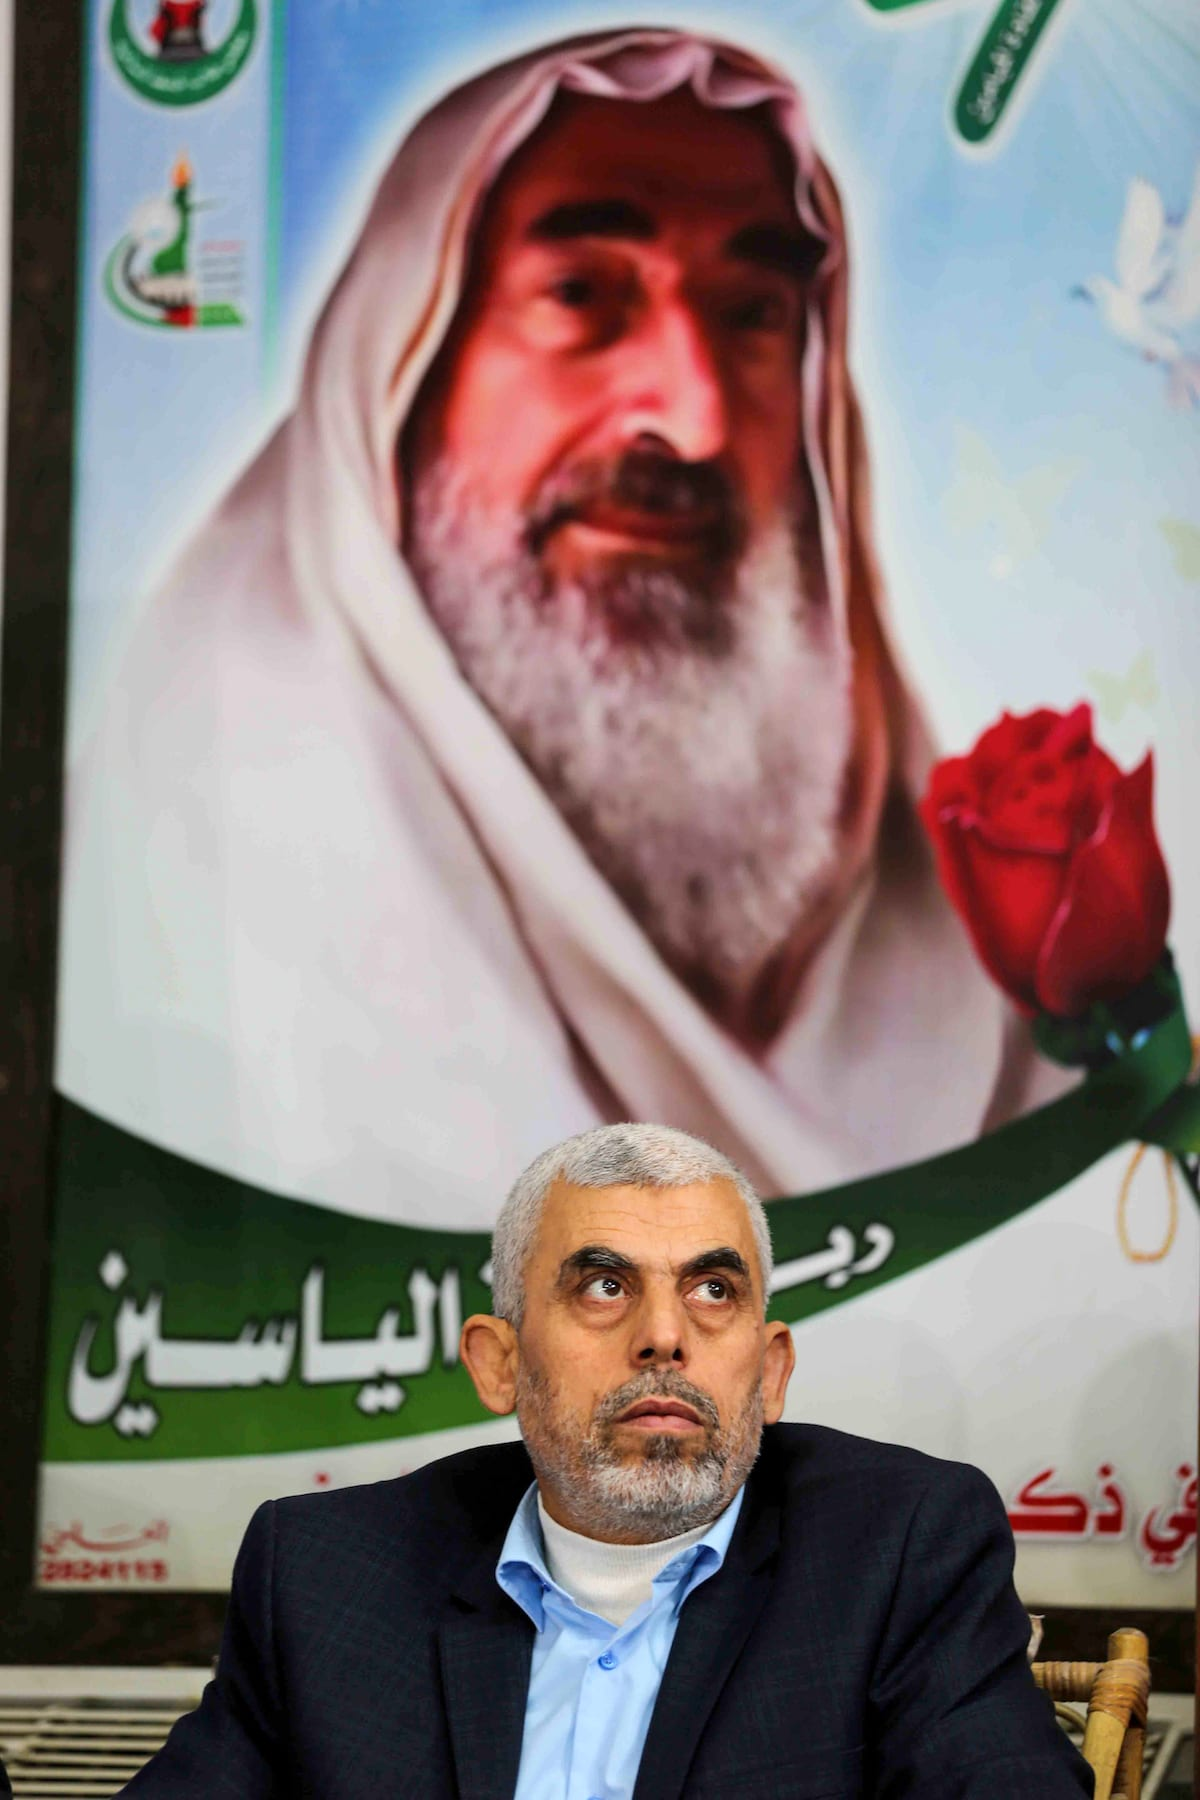 13th Anniversary Of Sheikh Yassin S Assassination Middle East Monitor